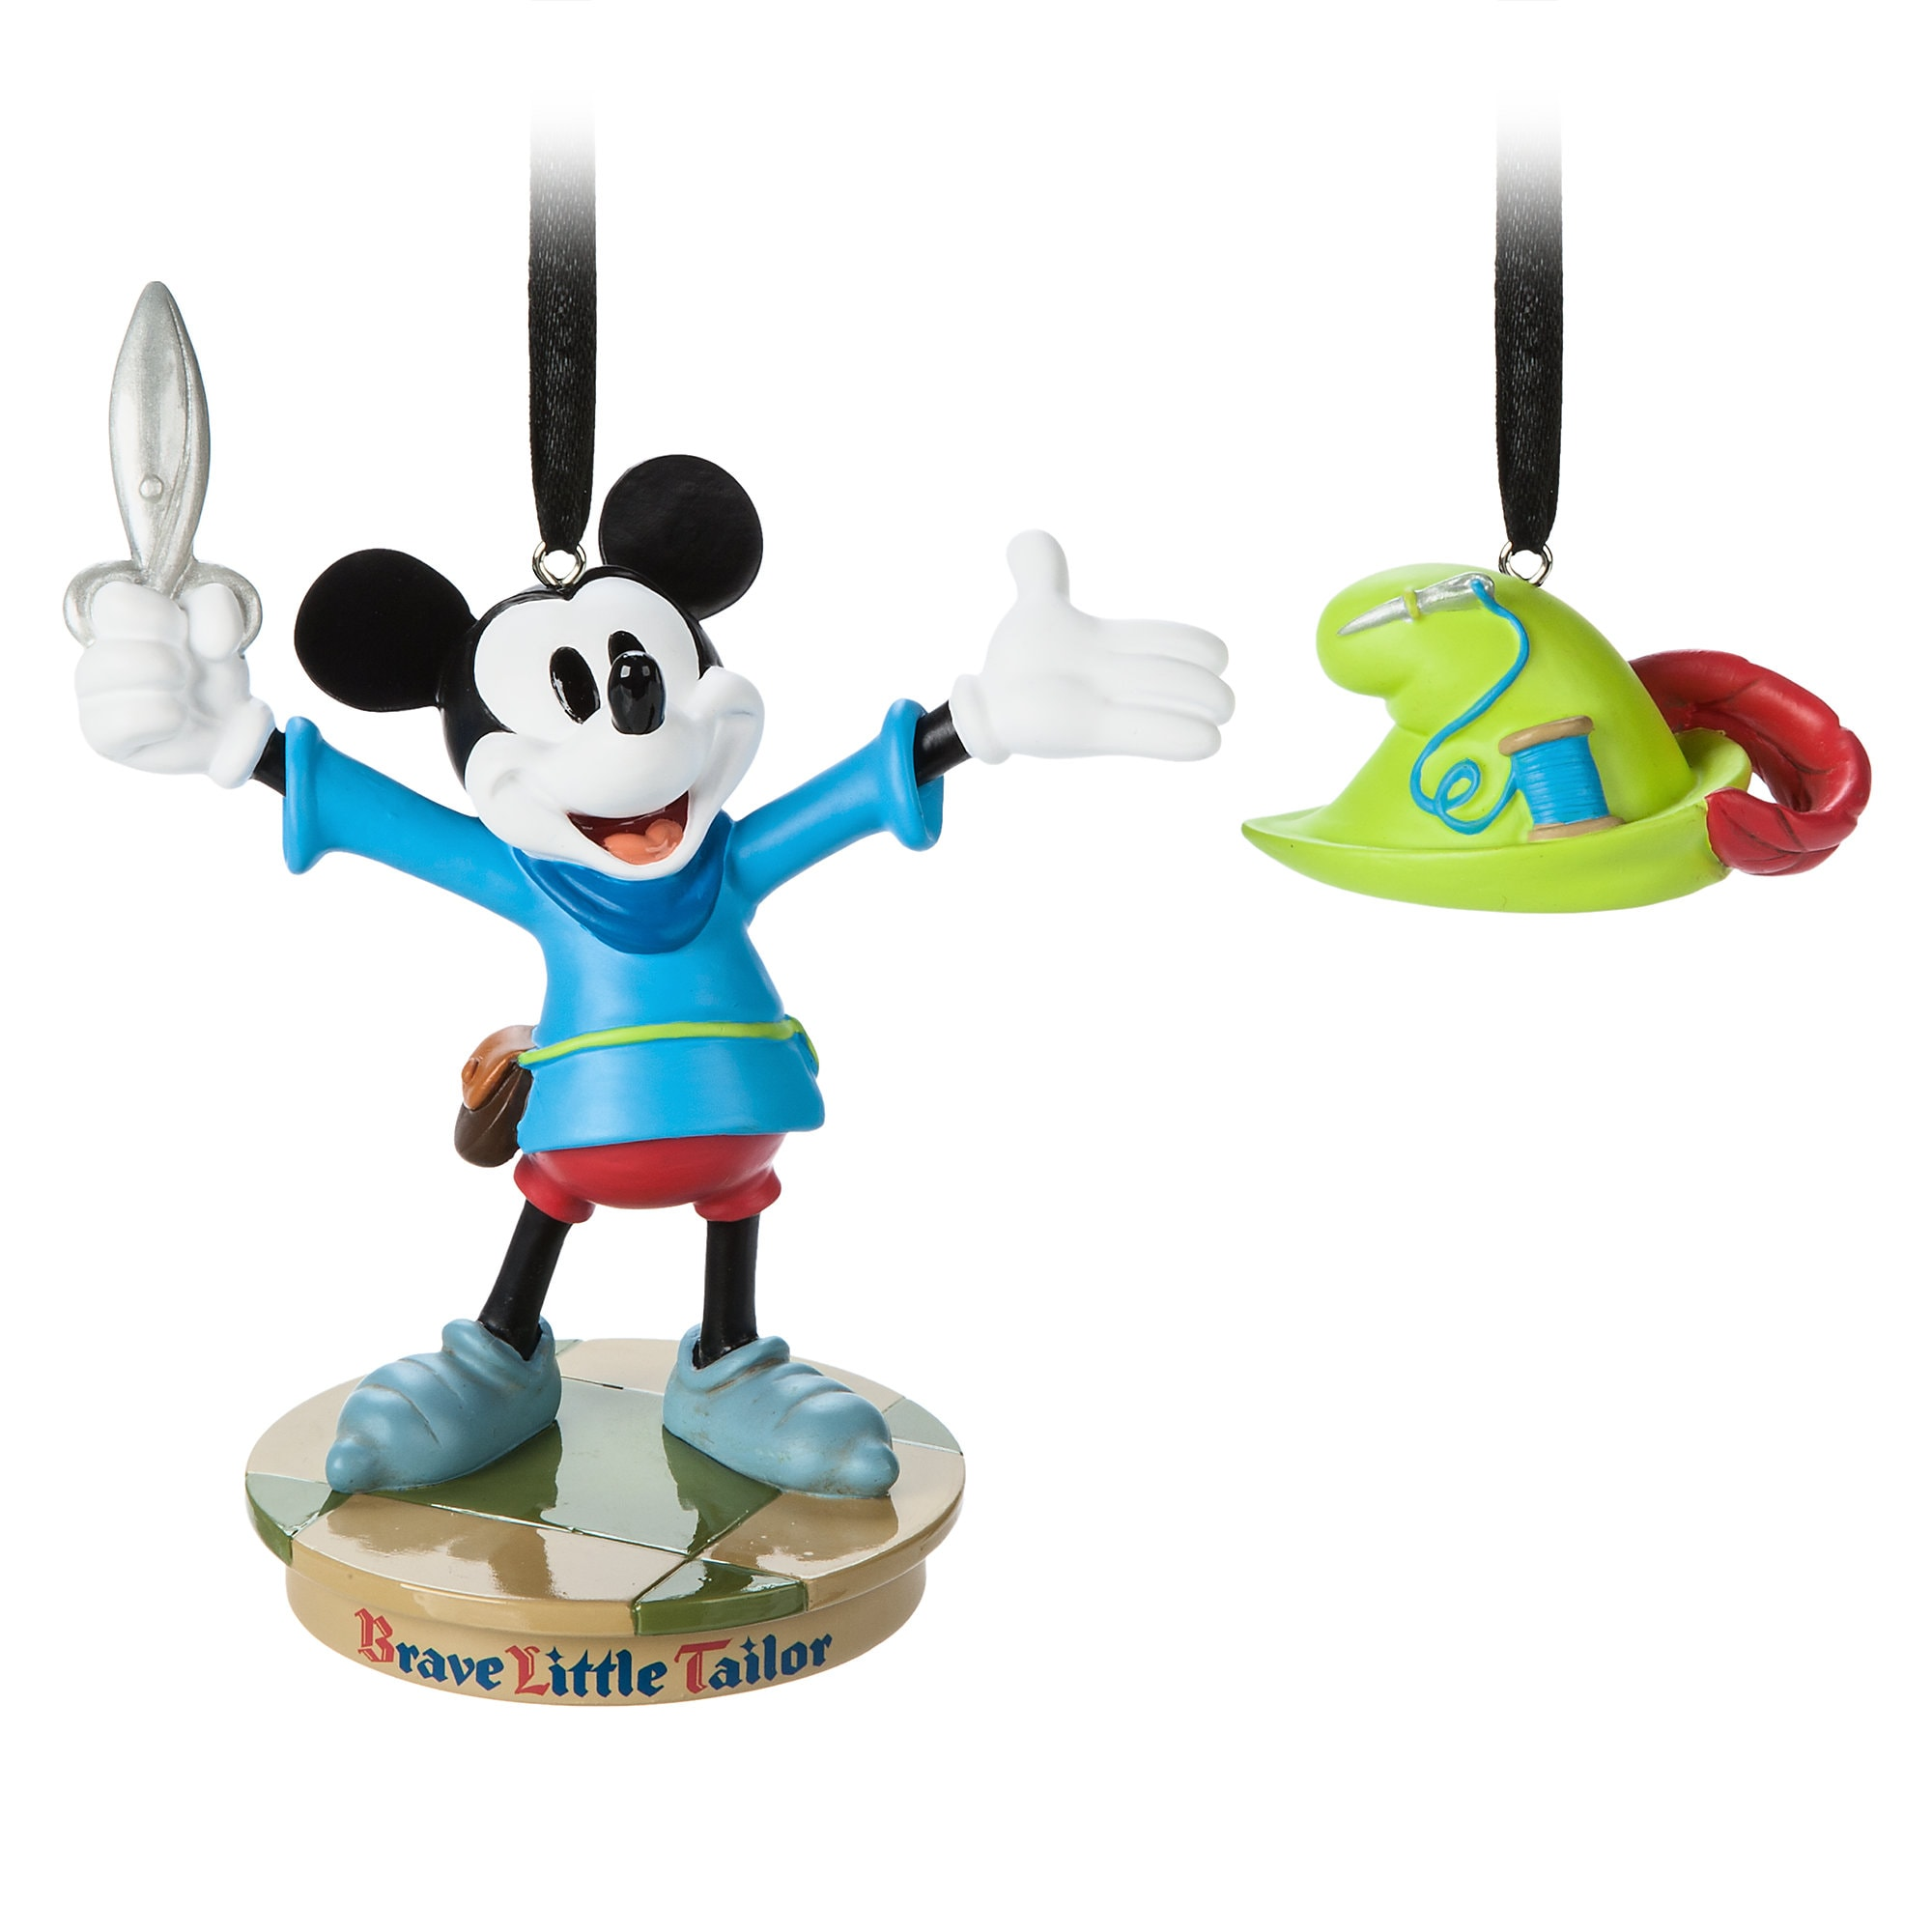 Mickey Mouse Through the Years Sketchbook Ornament Set - The Brave Little Tailor - April - Limited Release